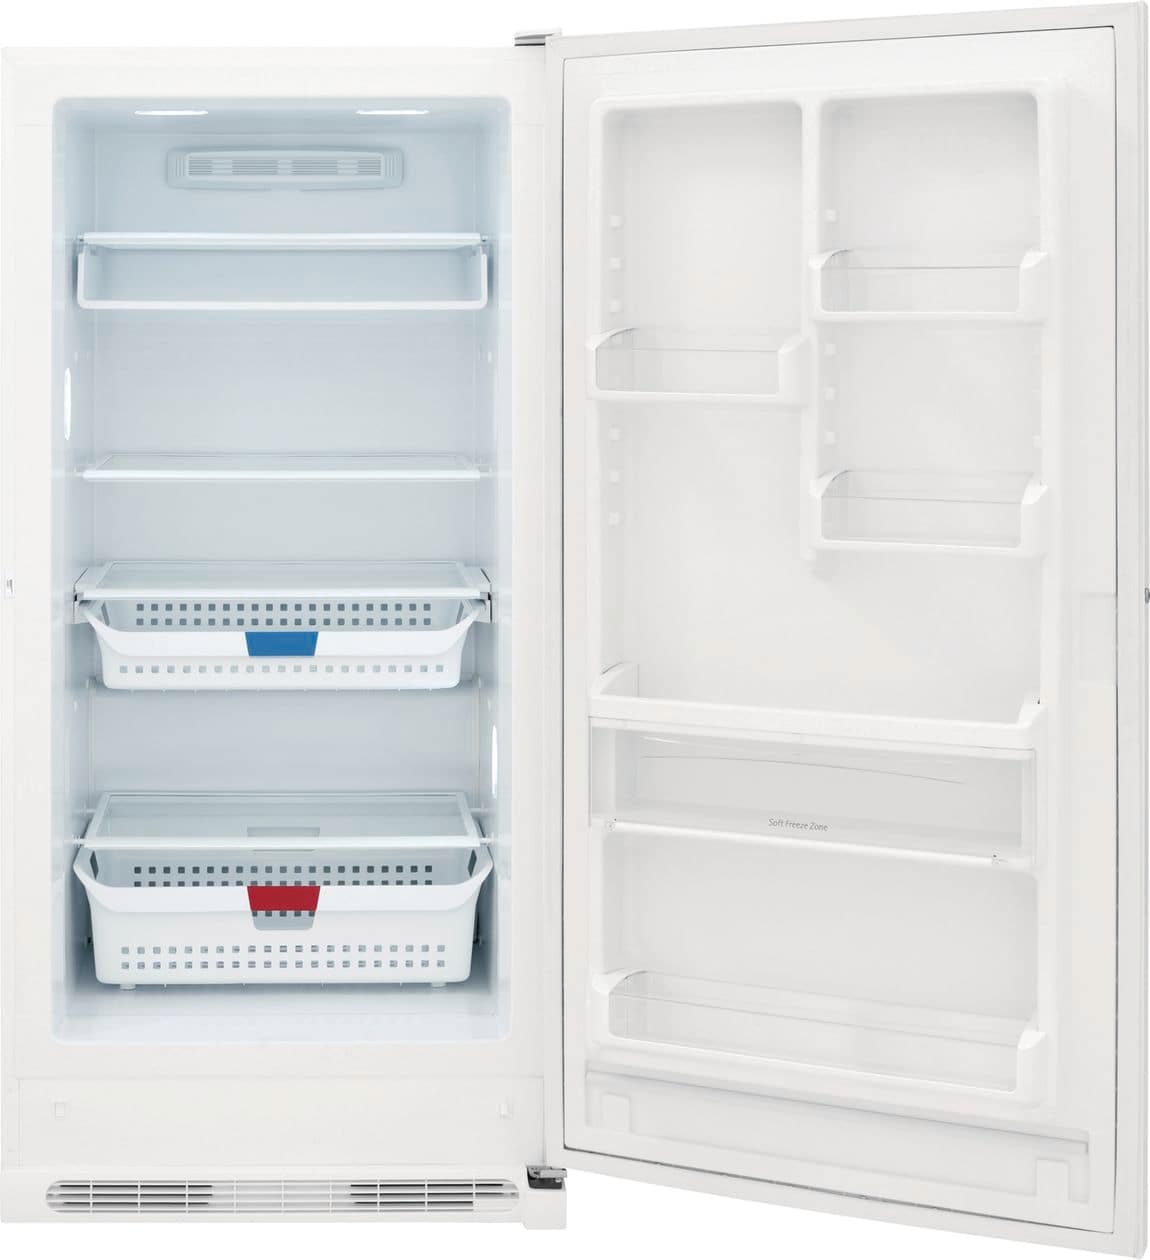 Model: FFFH21F6QW | Frigidaire 20.5 Cu. Ft. Upright Freezer